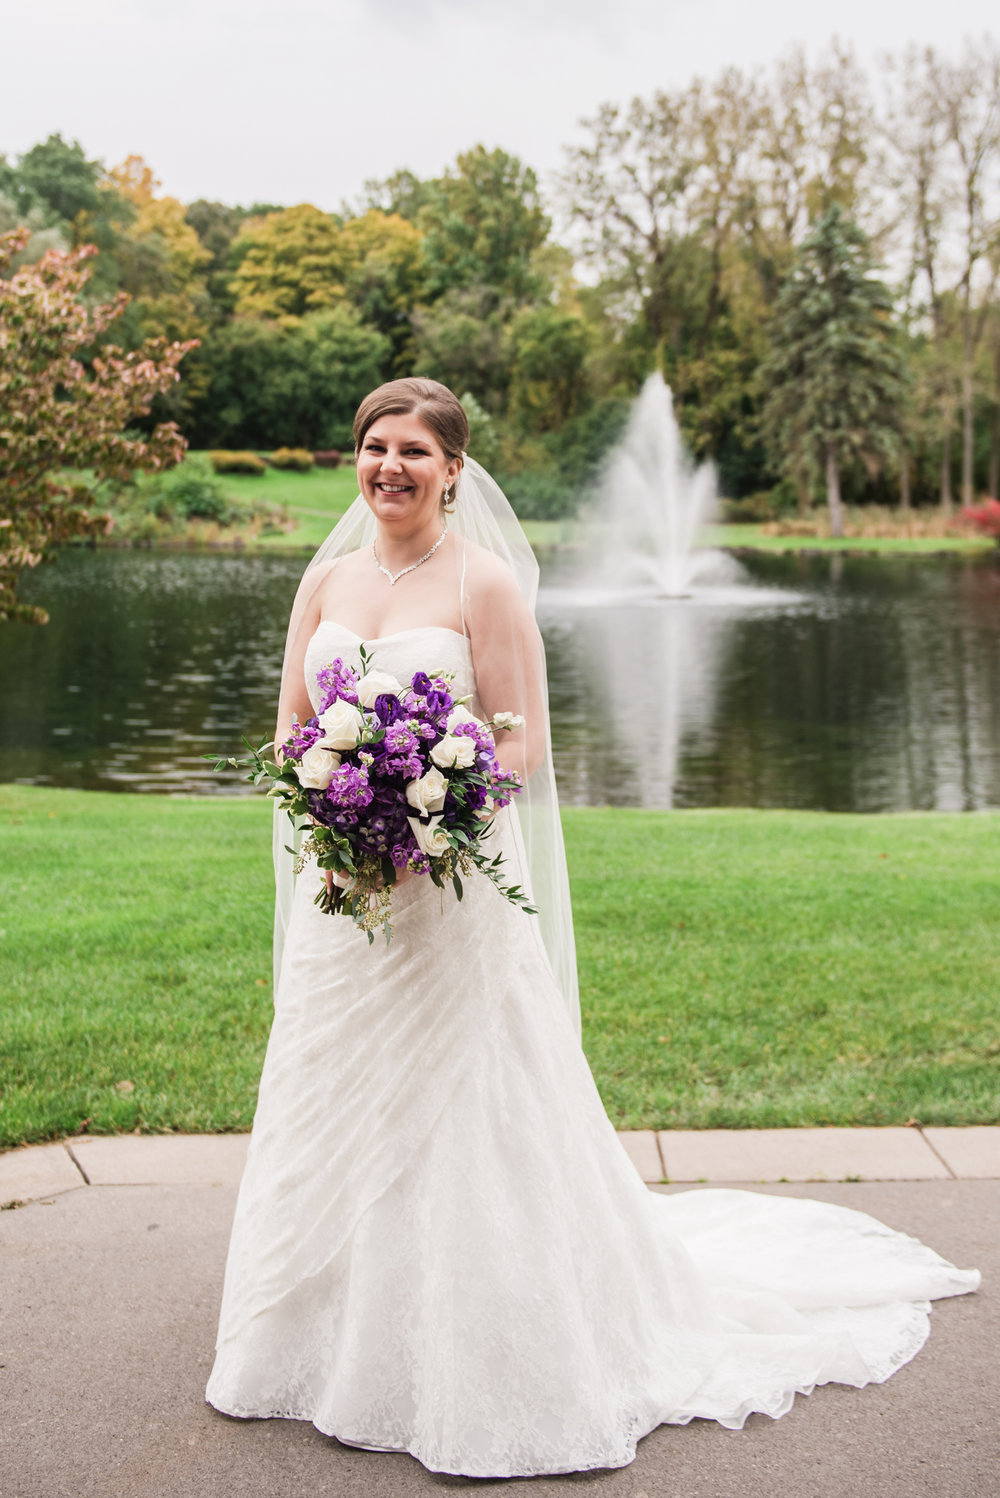 Shadow_Lake_Rochester_Wedding_JILL_STUDIO_Rochester_NY_Photographer_DSC_5647.jpg